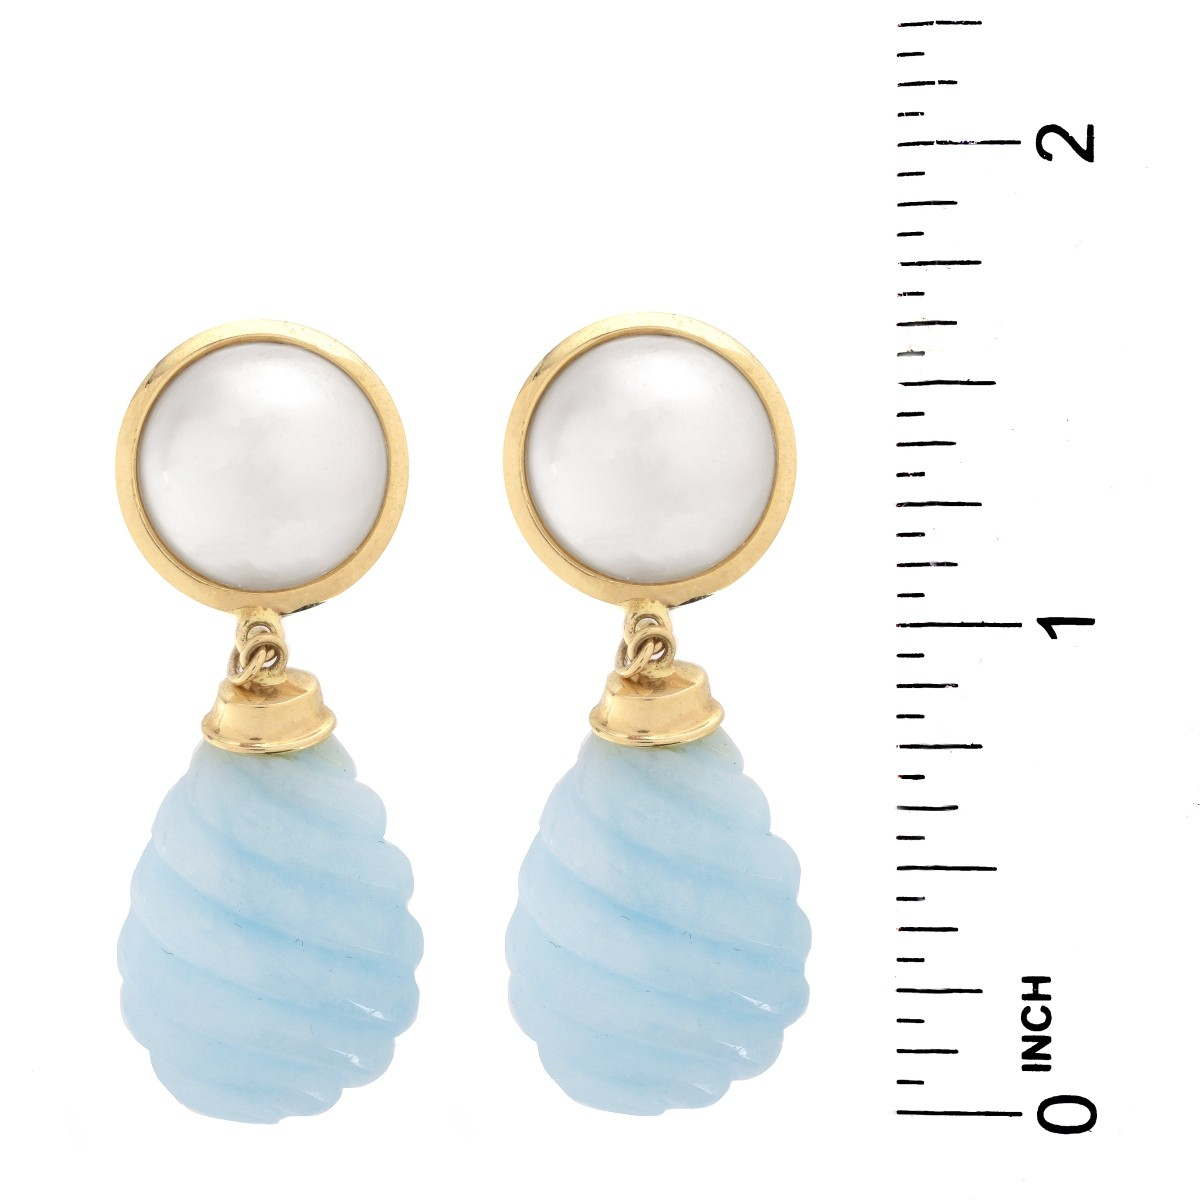 Vintage Mabe Pearl, 14K and Blue Stone Earrings